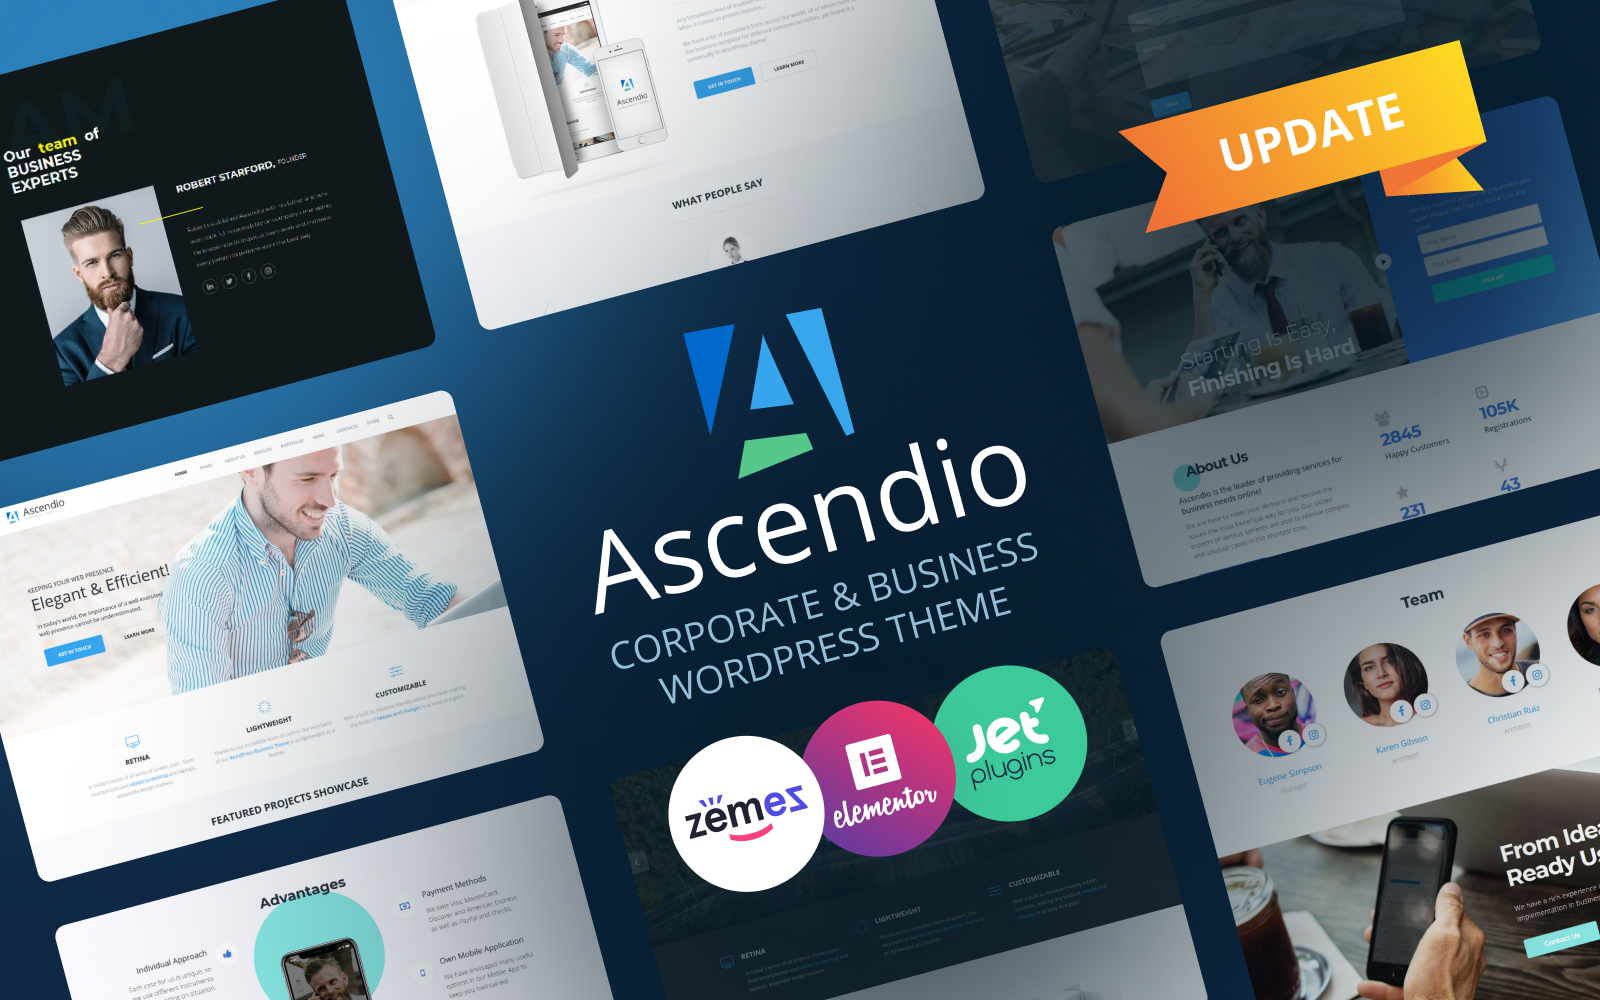 Reszponzív Ascendio - Corporate & Business WordPress Theme WordPress sablon 58924